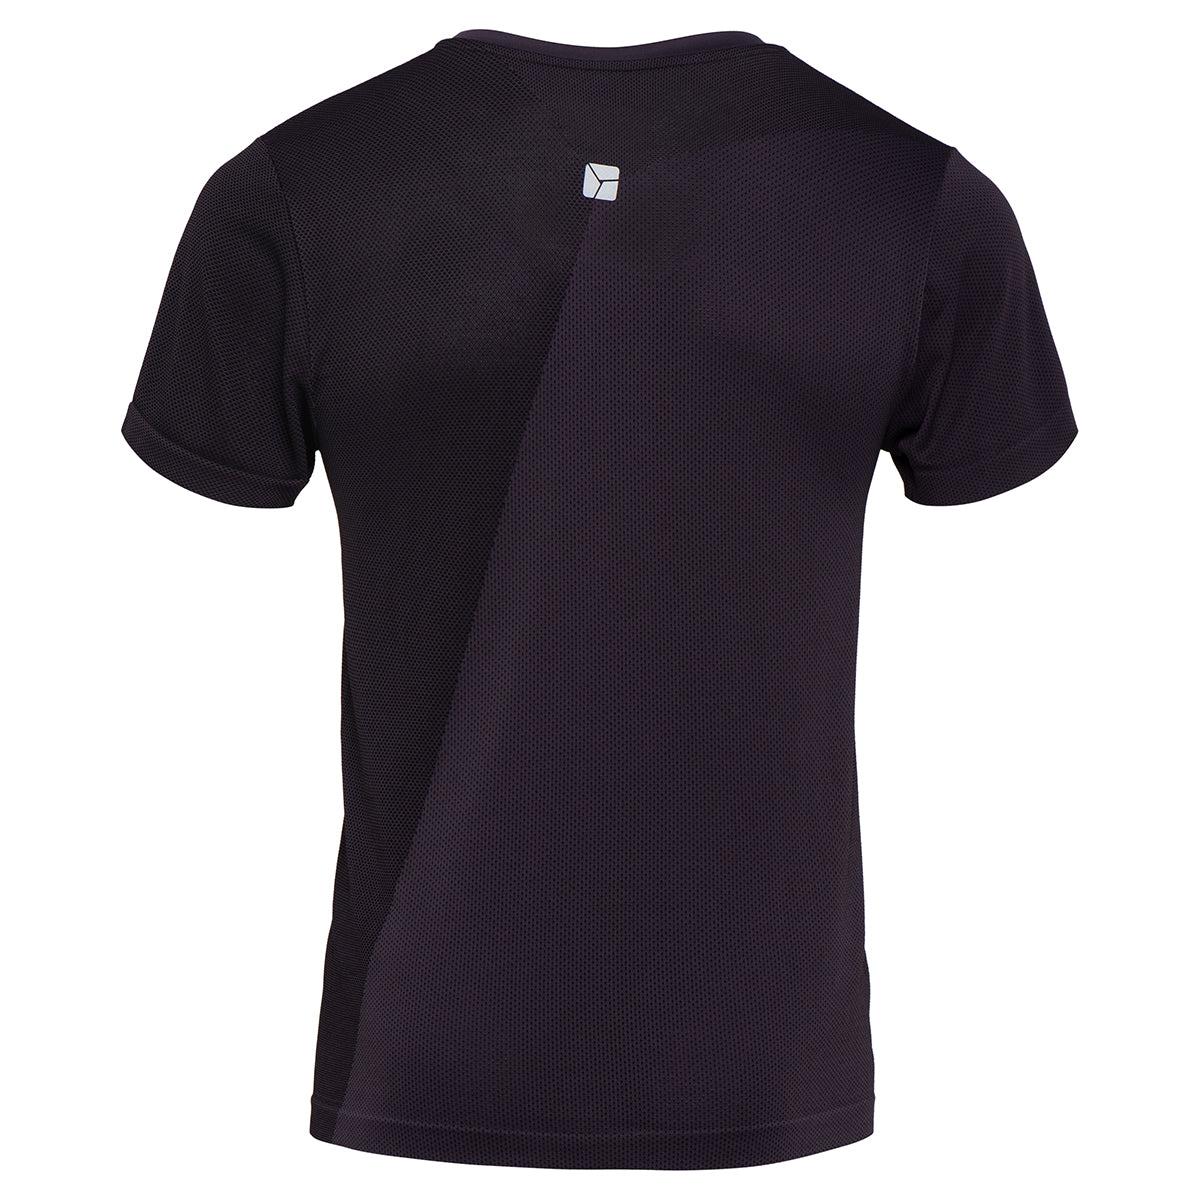 Le t-shirt running & fitness hommes.